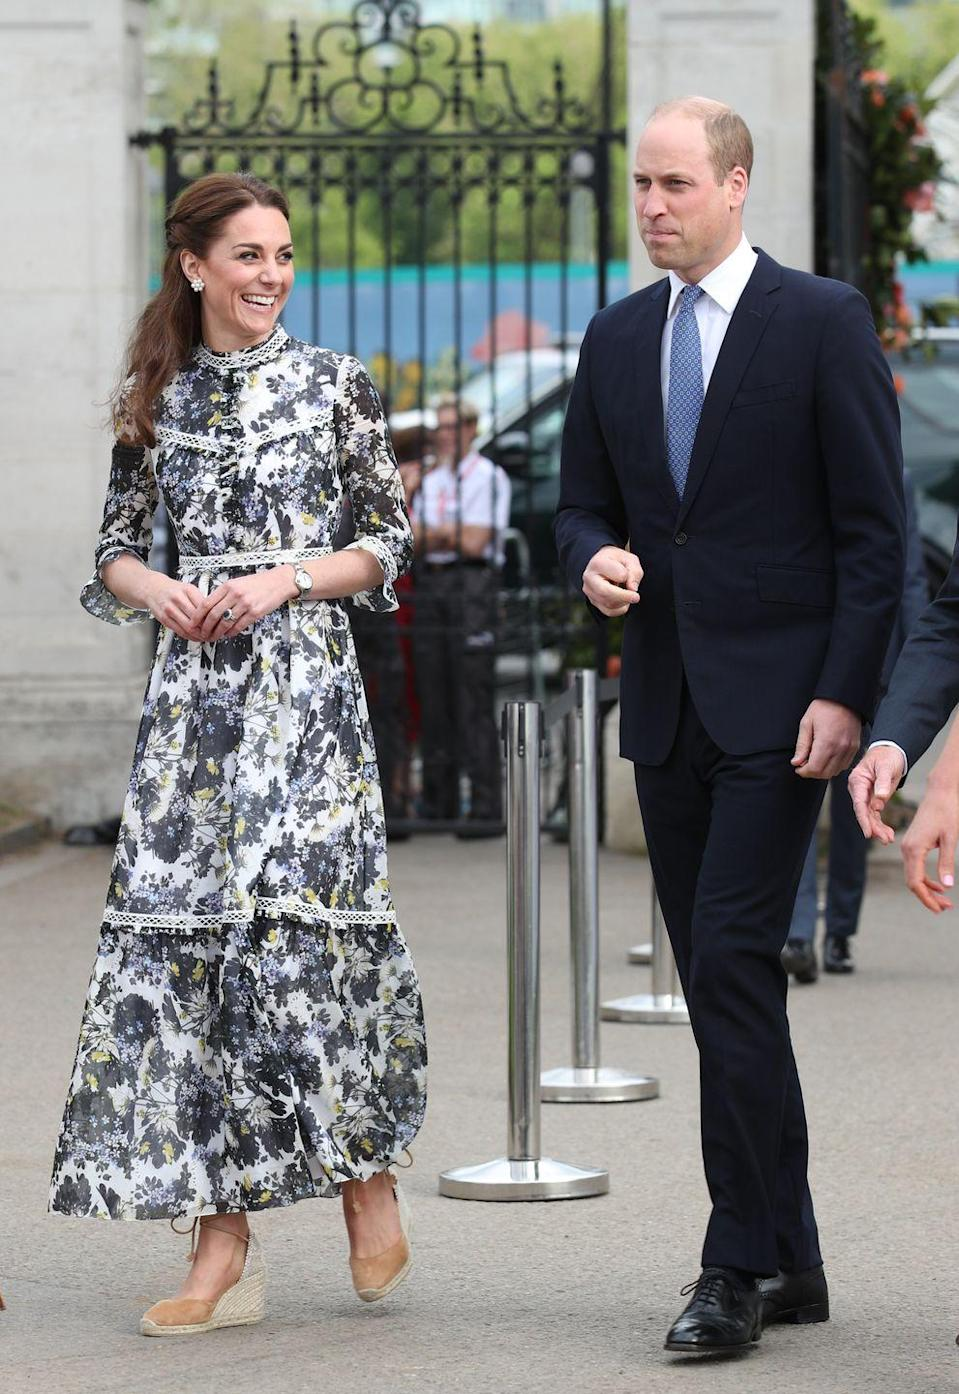 "<p>To show her husband and mother-in-law (also known as Prince William and Queen Elizabeth, respectively) around the garden she helped design for <a href=""//www.townandcountrymag.com/style/fashion-trends/a27510425/kate-middleton-superga-sneakers-massimo-dutti-chelsea-flower-show-2019/"" data-ylk=""slk:2019's Chelsea Flower Show"" class=""link rapid-noclick-resp"">2019's Chelsea Flower Show</a>, Kate paired casual-chic heels with a (naturally) floral printed dress.</p>"